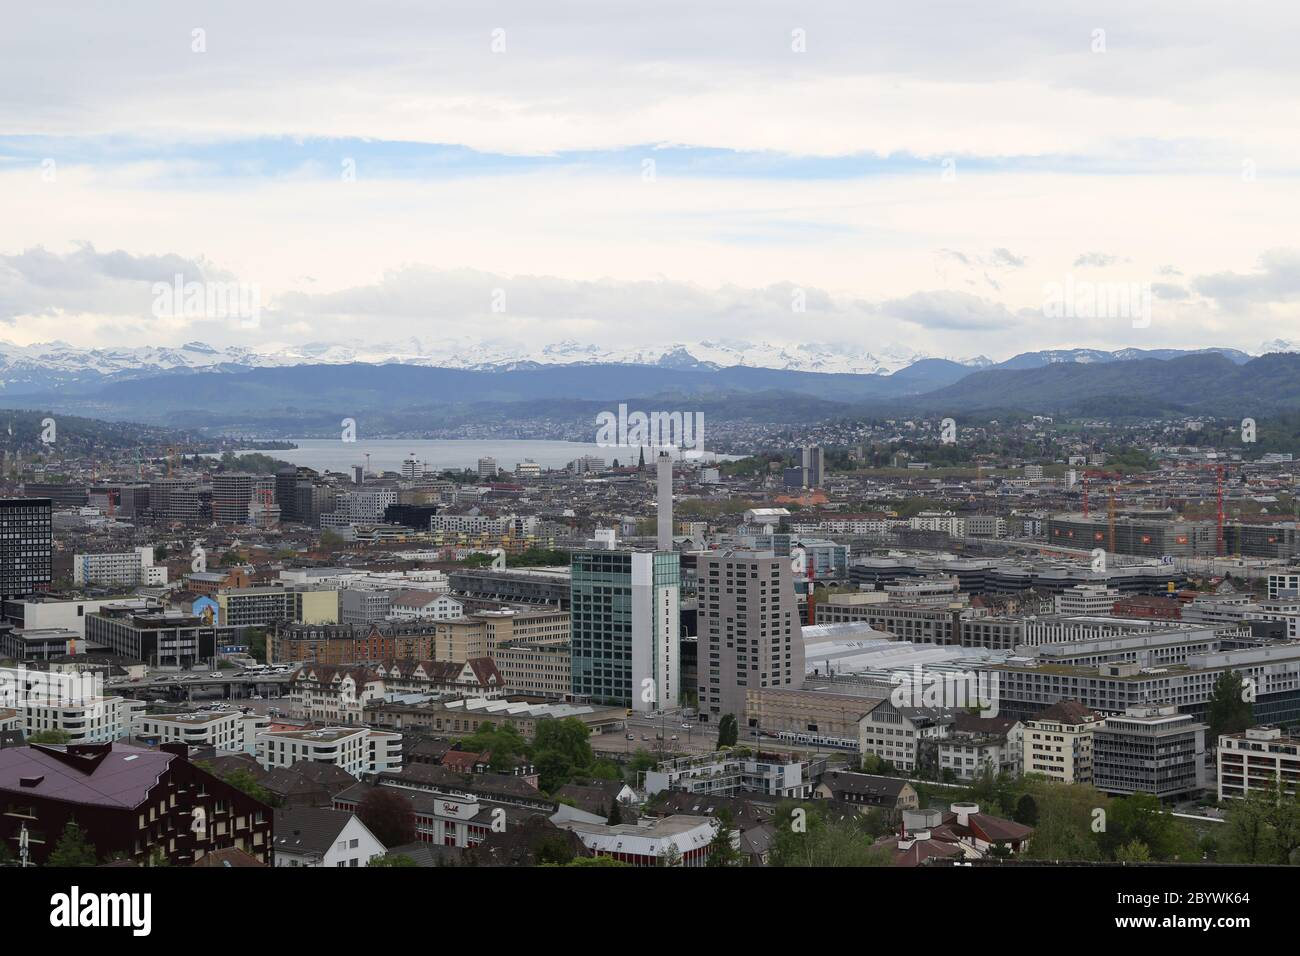 Zurich, in the background Lake Zurich and the mountains, view from Hönggerberg, Switzerland Stock Photo